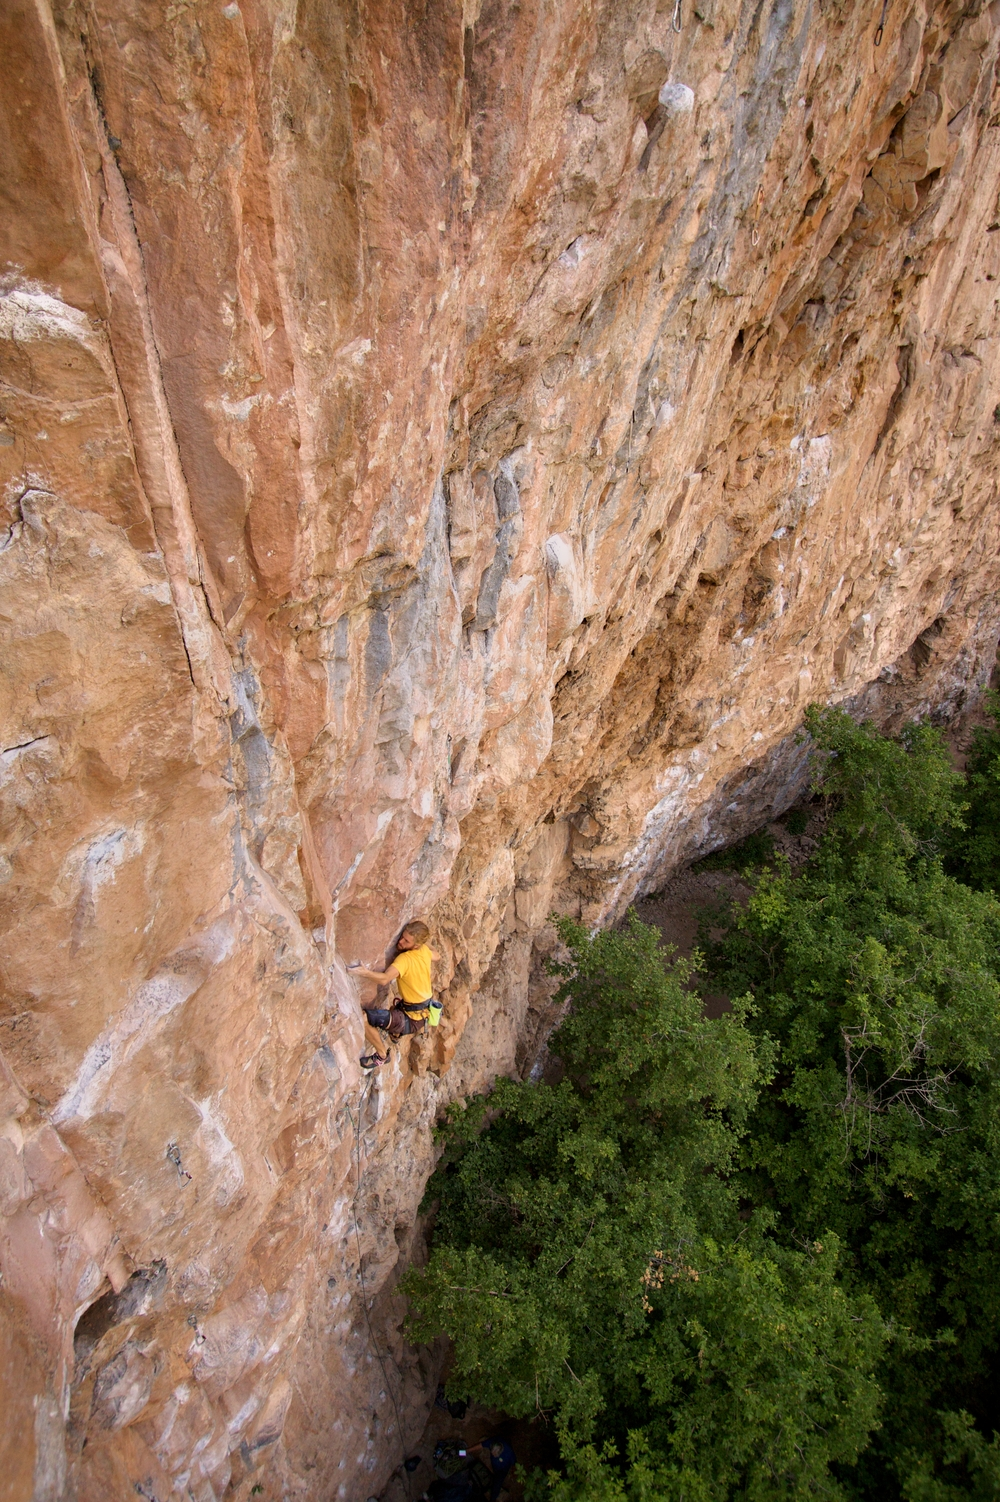 Wrapping up the crux sequence on Beer Run.  Photo by Brendan Leader